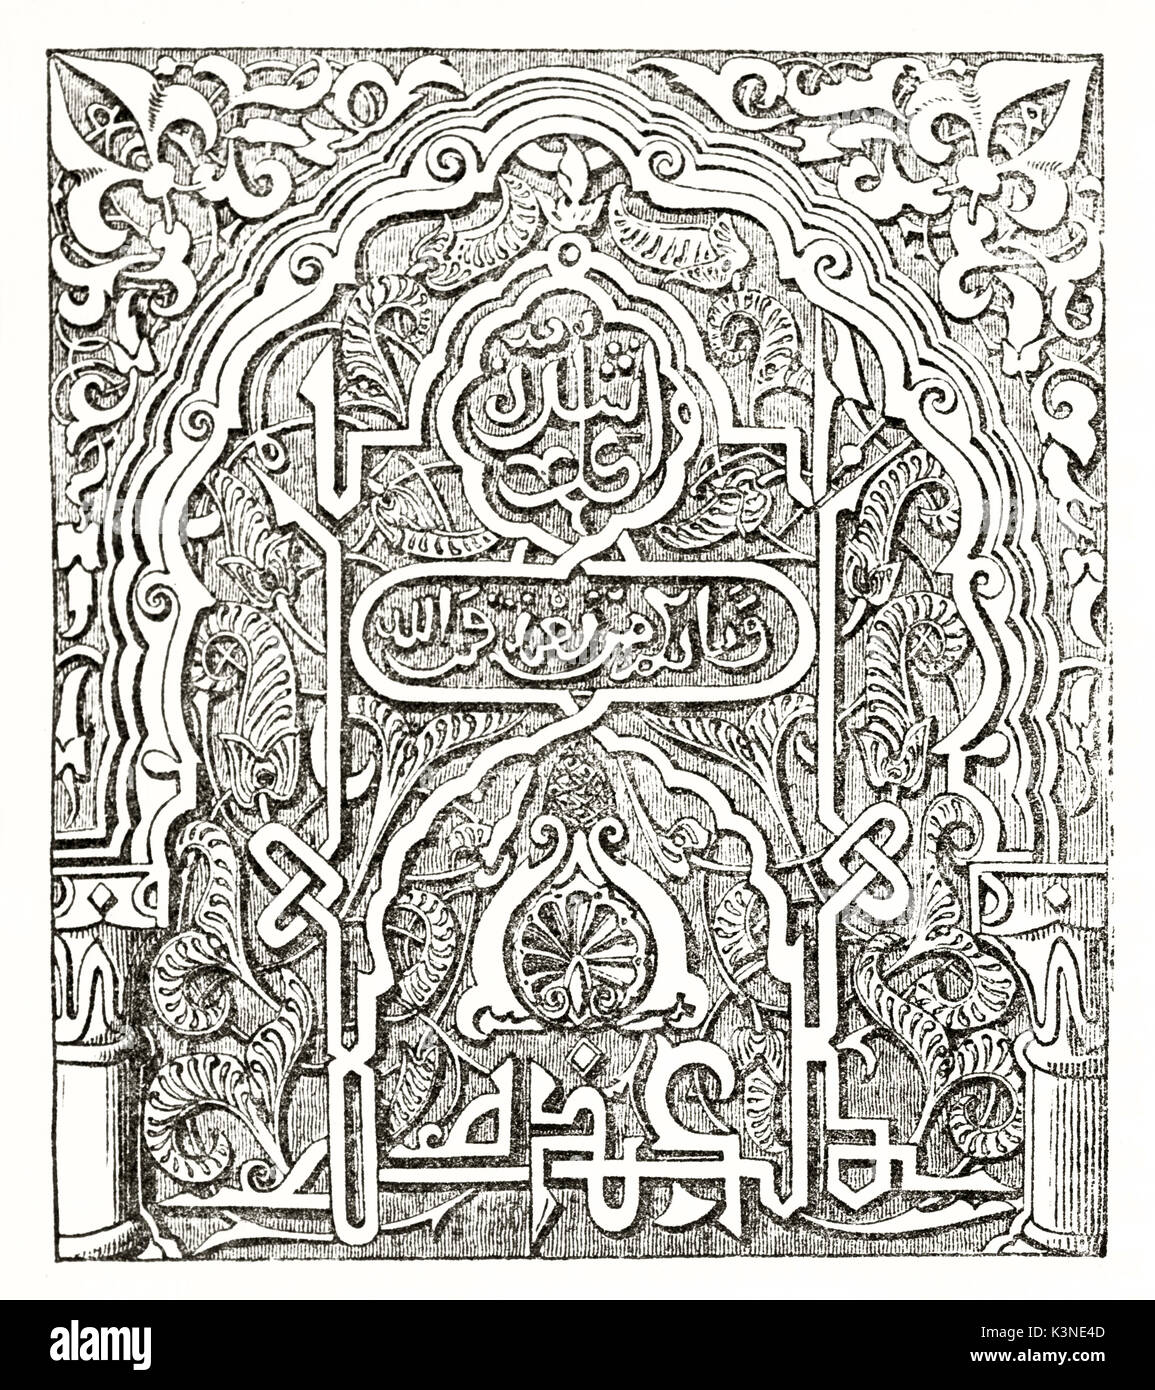 ancient rich arabesque, old engraved reproduction from Cordoba cathedral. Black and white etching style decoration by unidentified author published on Magasin Pittoresque Paris 1839 - Stock Image